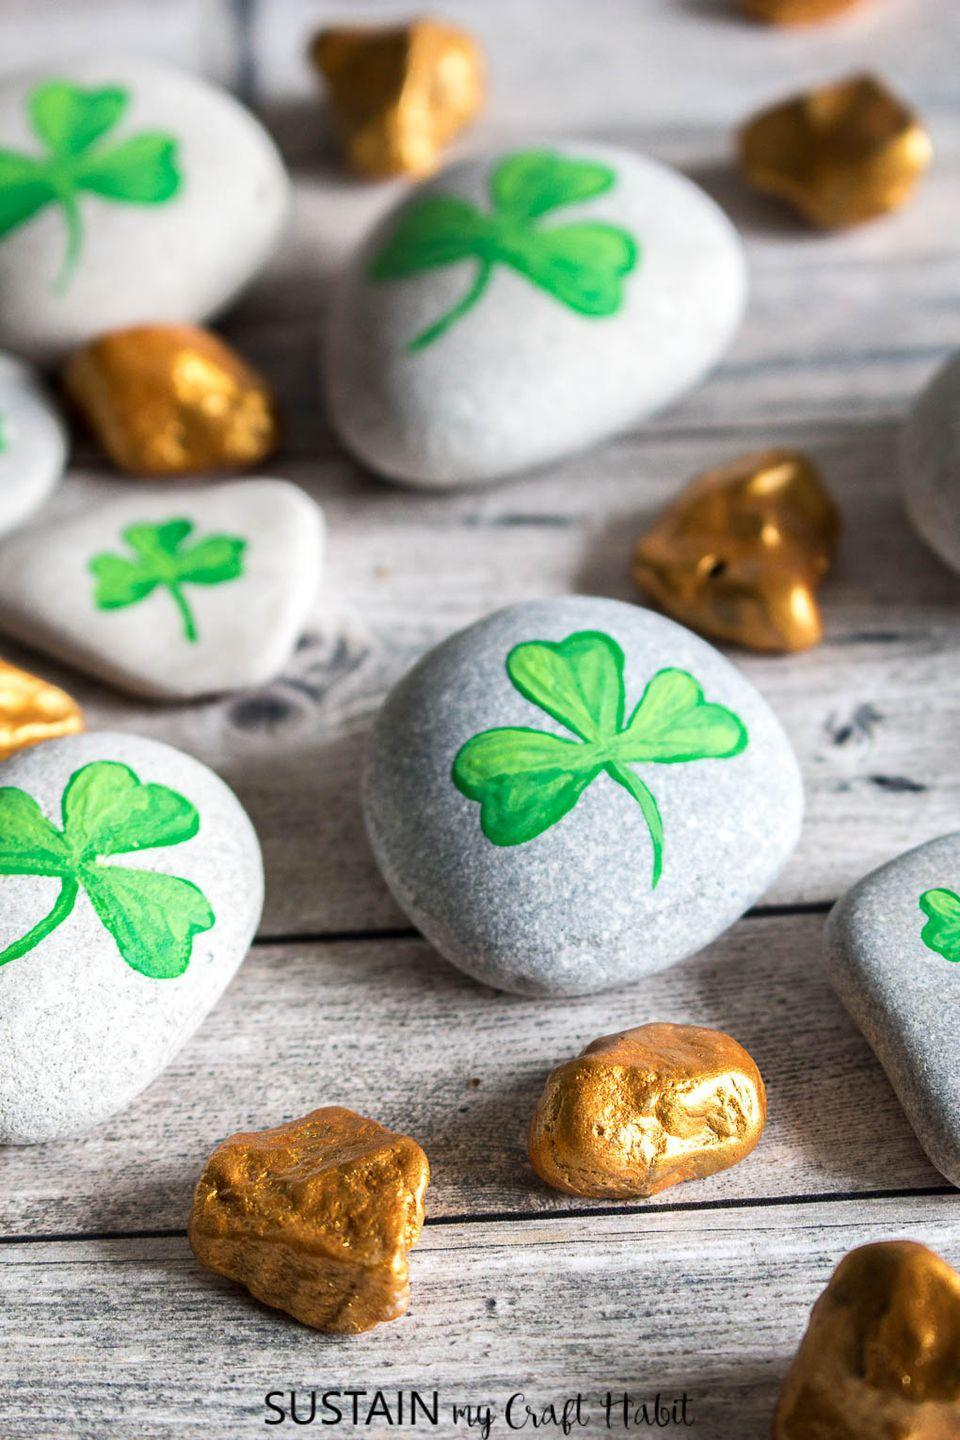 """<p>These beautifully painted rocks can be created more easily than you think, thanks to the clear step-by-step instructions.</p><p><strong>Get the tutorial at <a href=""""https://sustainmycrafthabit.com/st-patricks-day-crafts/"""" rel=""""nofollow noopener"""" target=""""_blank"""" data-ylk=""""slk:Sustain My Craft Habit"""" class=""""link rapid-noclick-resp"""">Sustain My Craft Habit</a>. </strong></p><p><strong><a class=""""link rapid-noclick-resp"""" href=""""https://www.amazon.com/Apple-Barrel-Acrylic-PROMOABI-Assorted/dp/B00ATJSD8I/?tag=syn-yahoo-20&ascsubtag=%5Bartid%7C10050.g.4035%5Bsrc%7Cyahoo-us"""" rel=""""nofollow noopener"""" target=""""_blank"""" data-ylk=""""slk:SHOP PAINTS"""">SHOP PAINTS</a><br></strong></p>"""